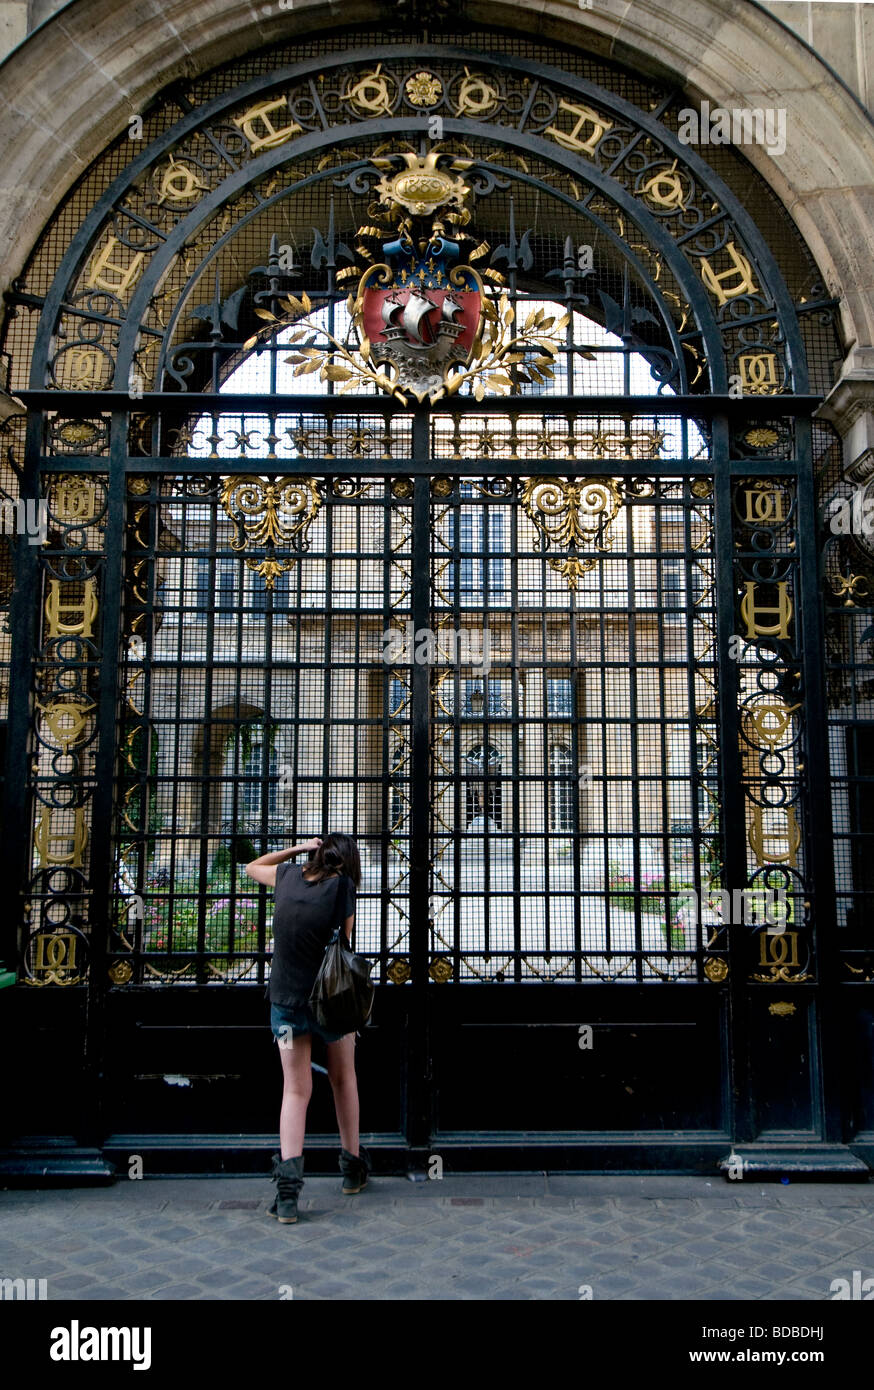 Girl trying to make a photo before gate with bars at Musee Carnavalet, Paris,  Le Marait - Stock Image